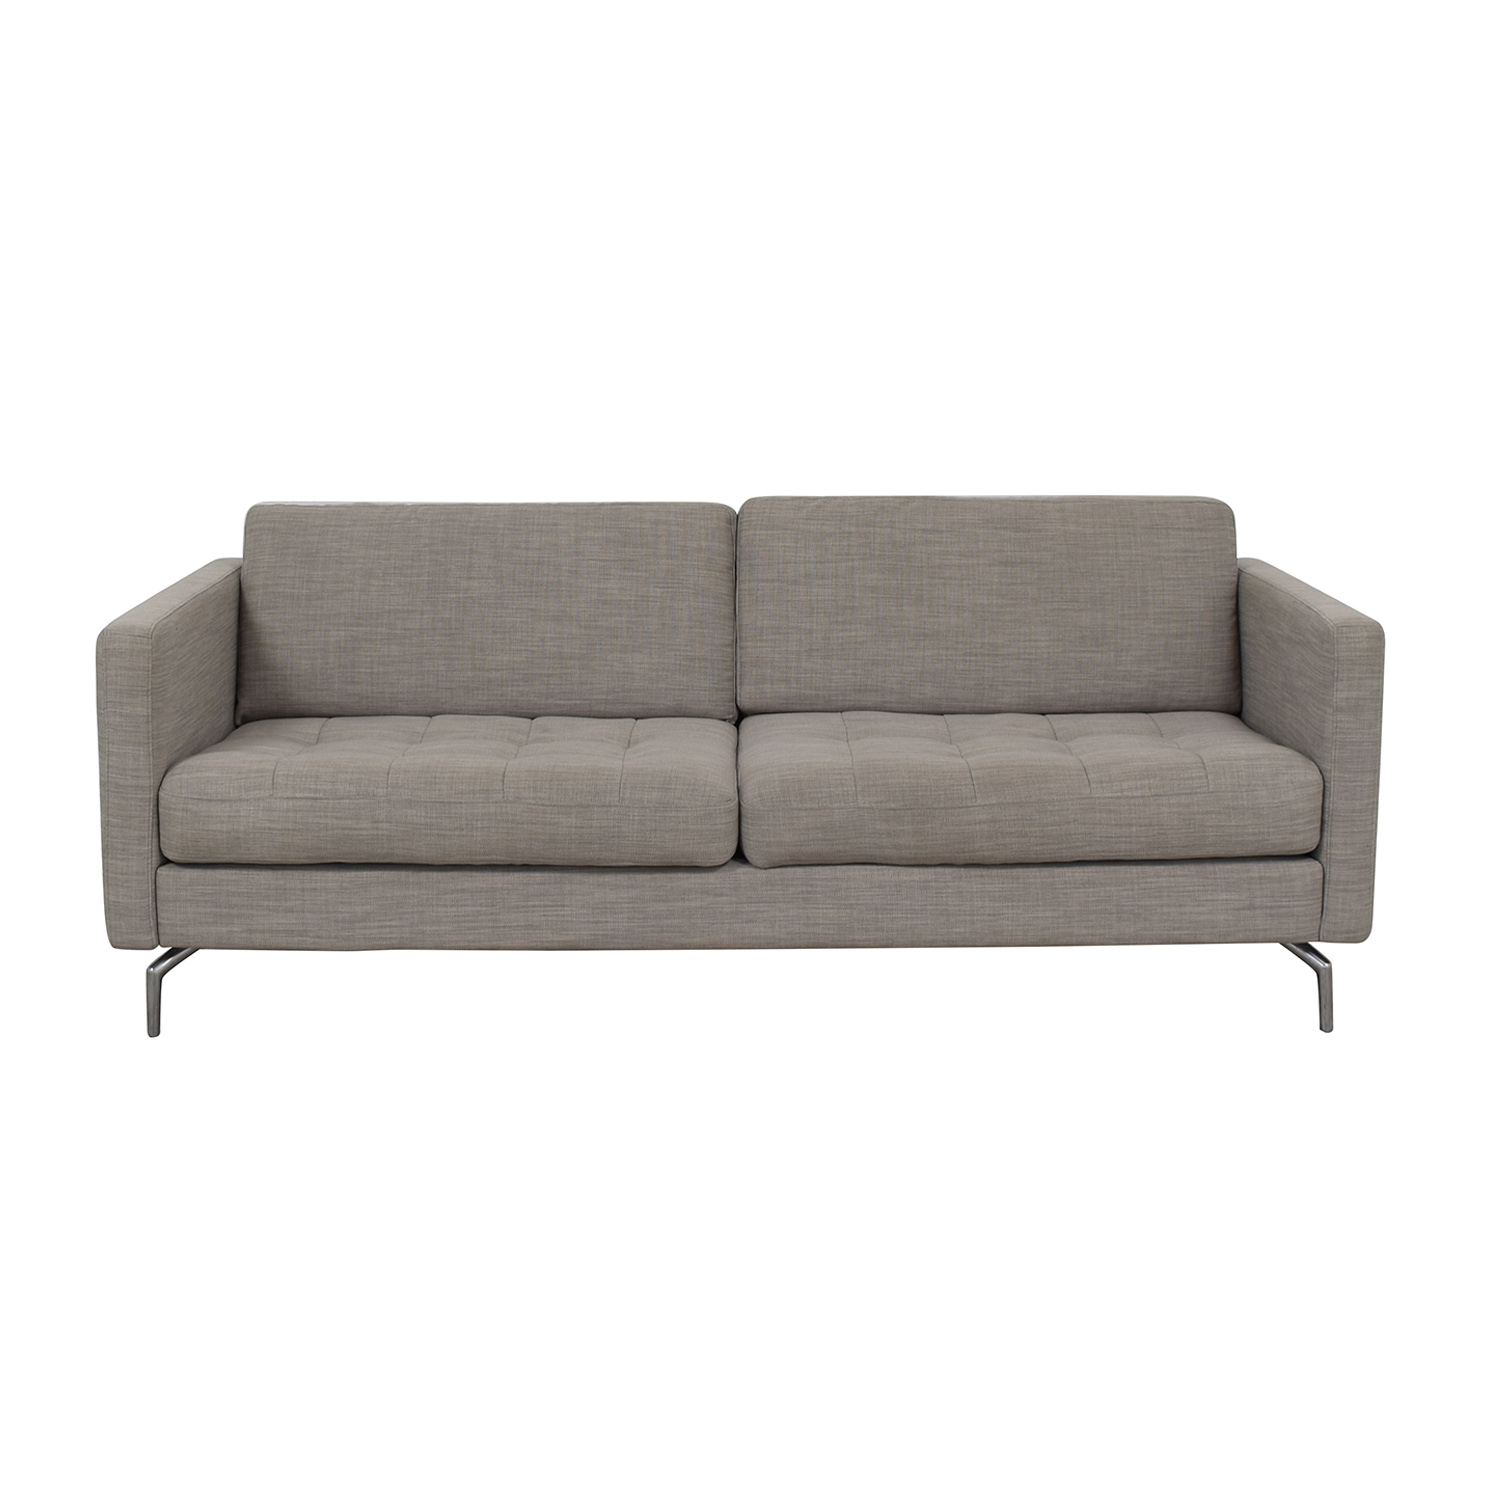 shop BoConcept BoConcept Osaka Grey Tufted Two-Cushion Sofa online